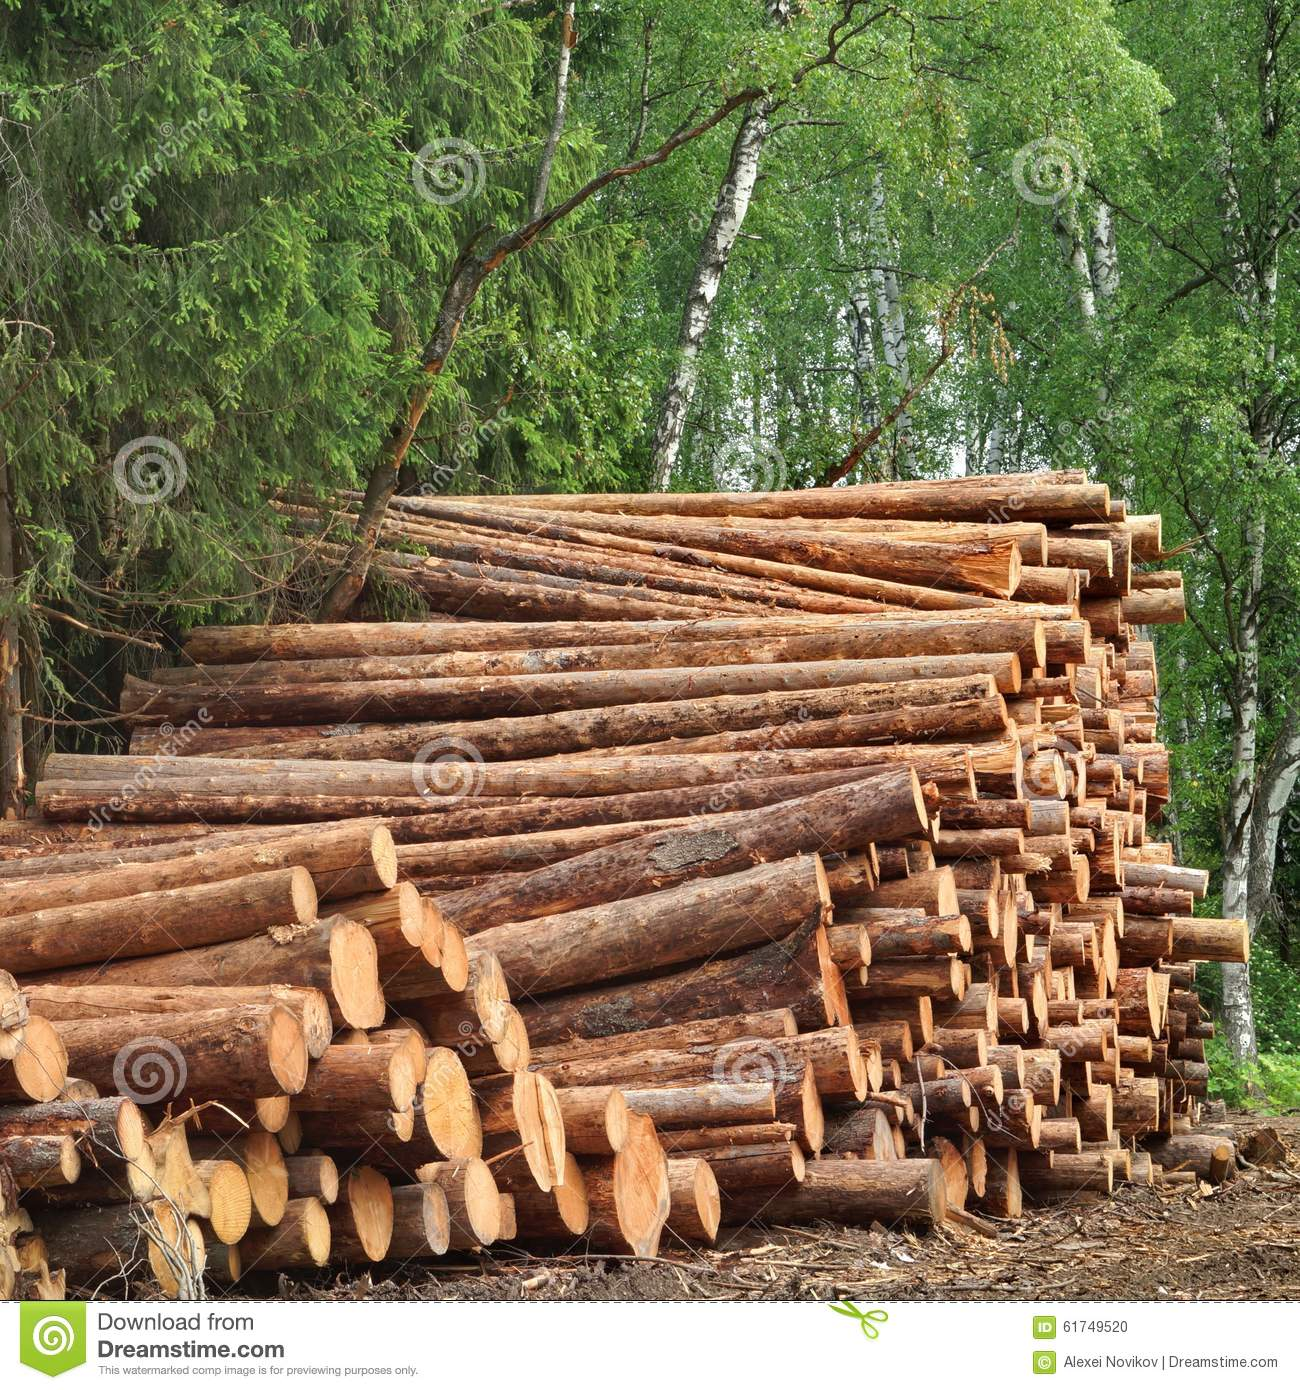 Timber harvesting for lumber industry or wooden housing